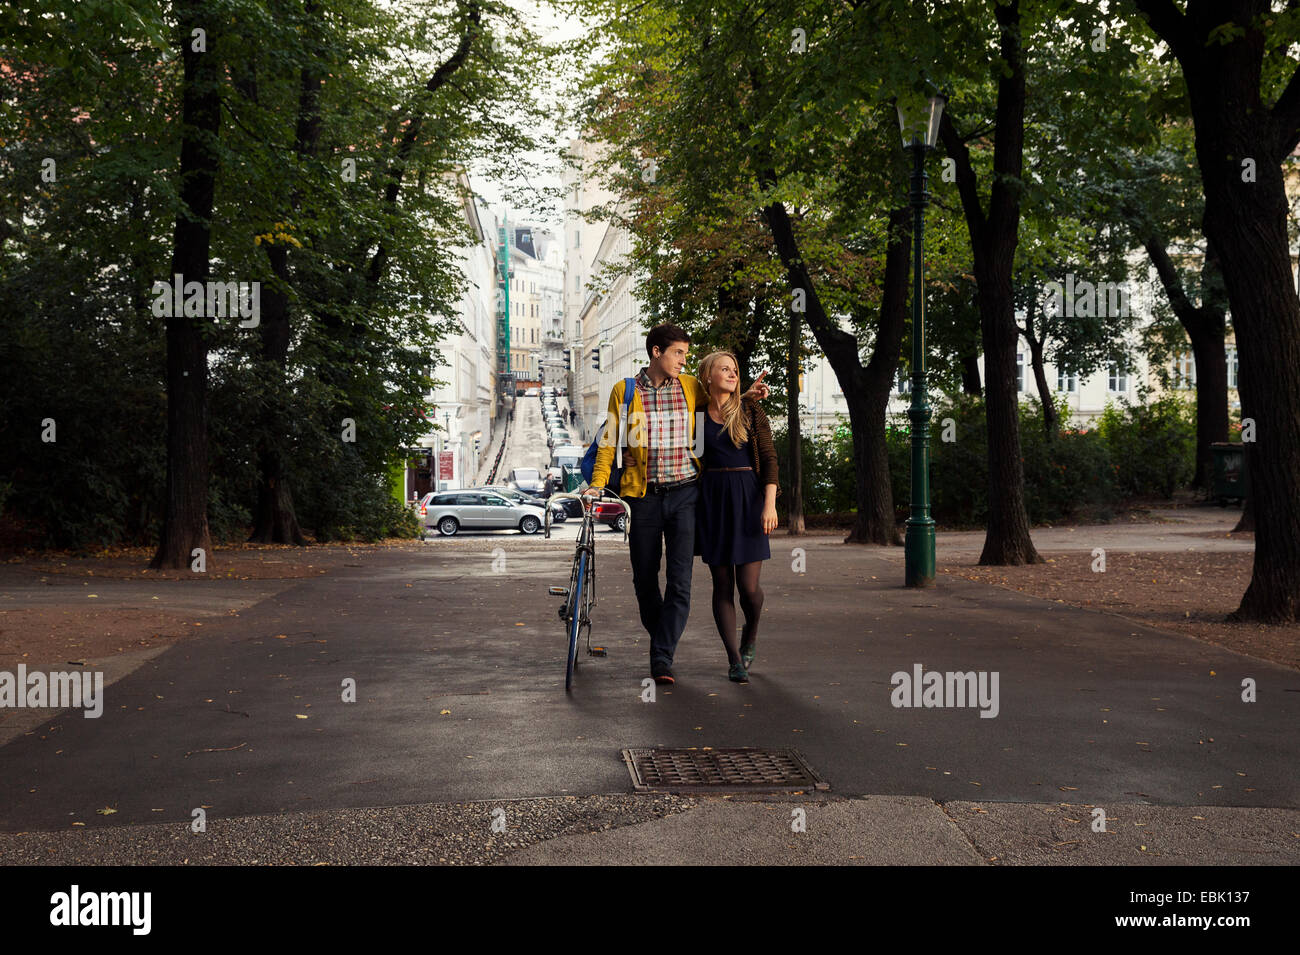 Young couple strolling in tree lined park - Stock Image